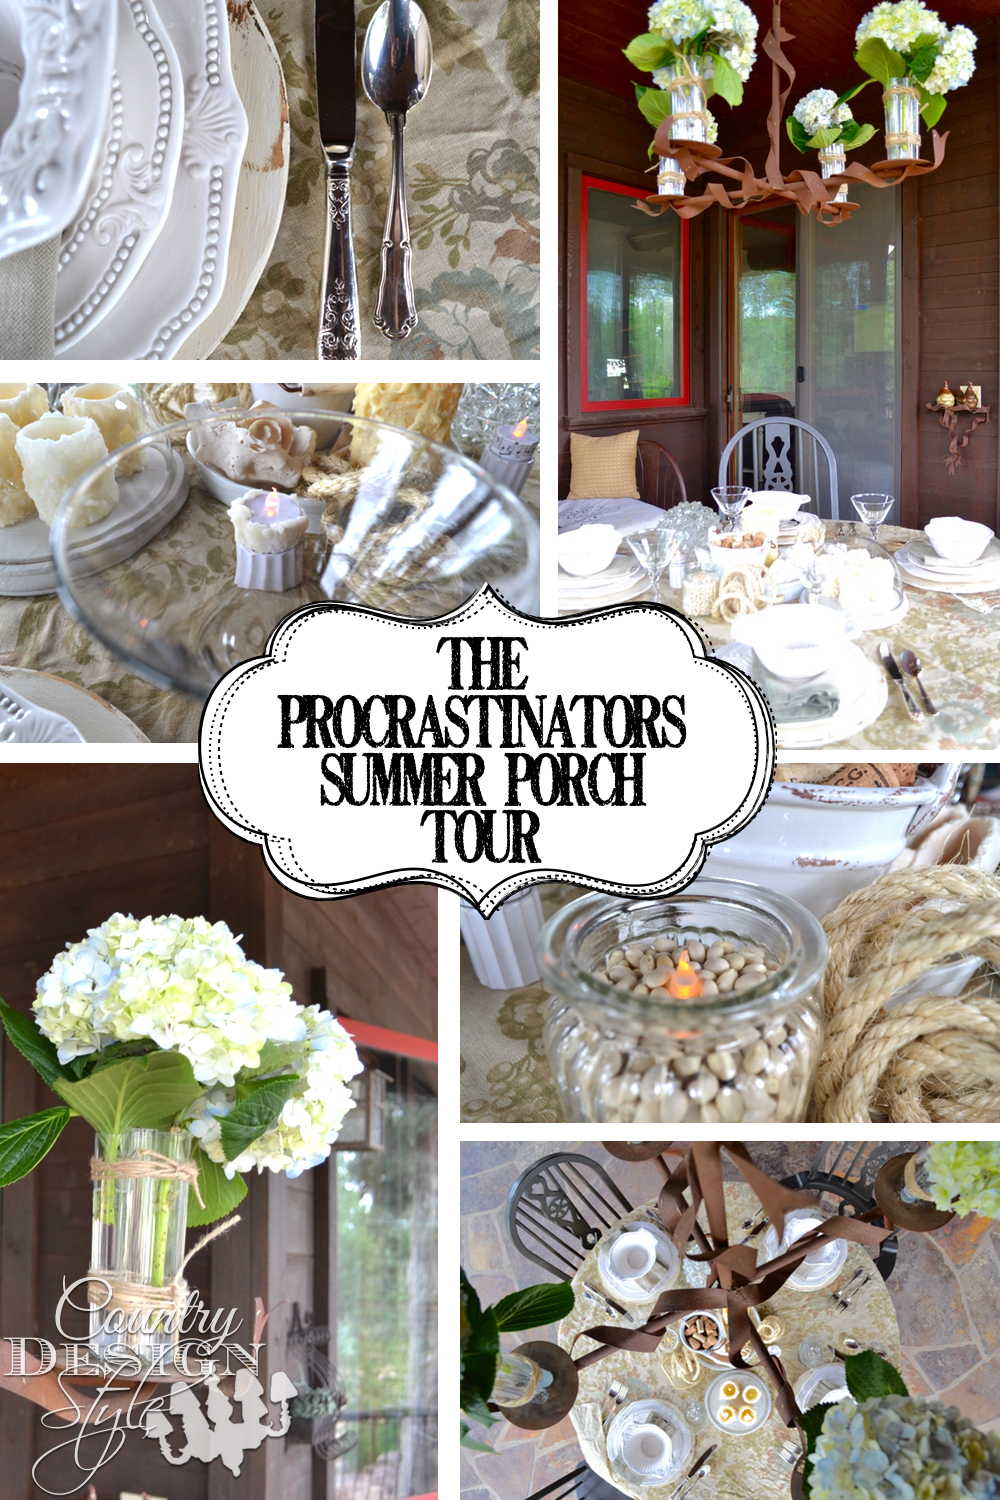 Porch Pictures of a procrastinators summer porch and tour of others summer porches. Pictures of summer outdoor entertaining. Outdoor chandelier ideas.  Picnic table and lighting tips and DIY projects.